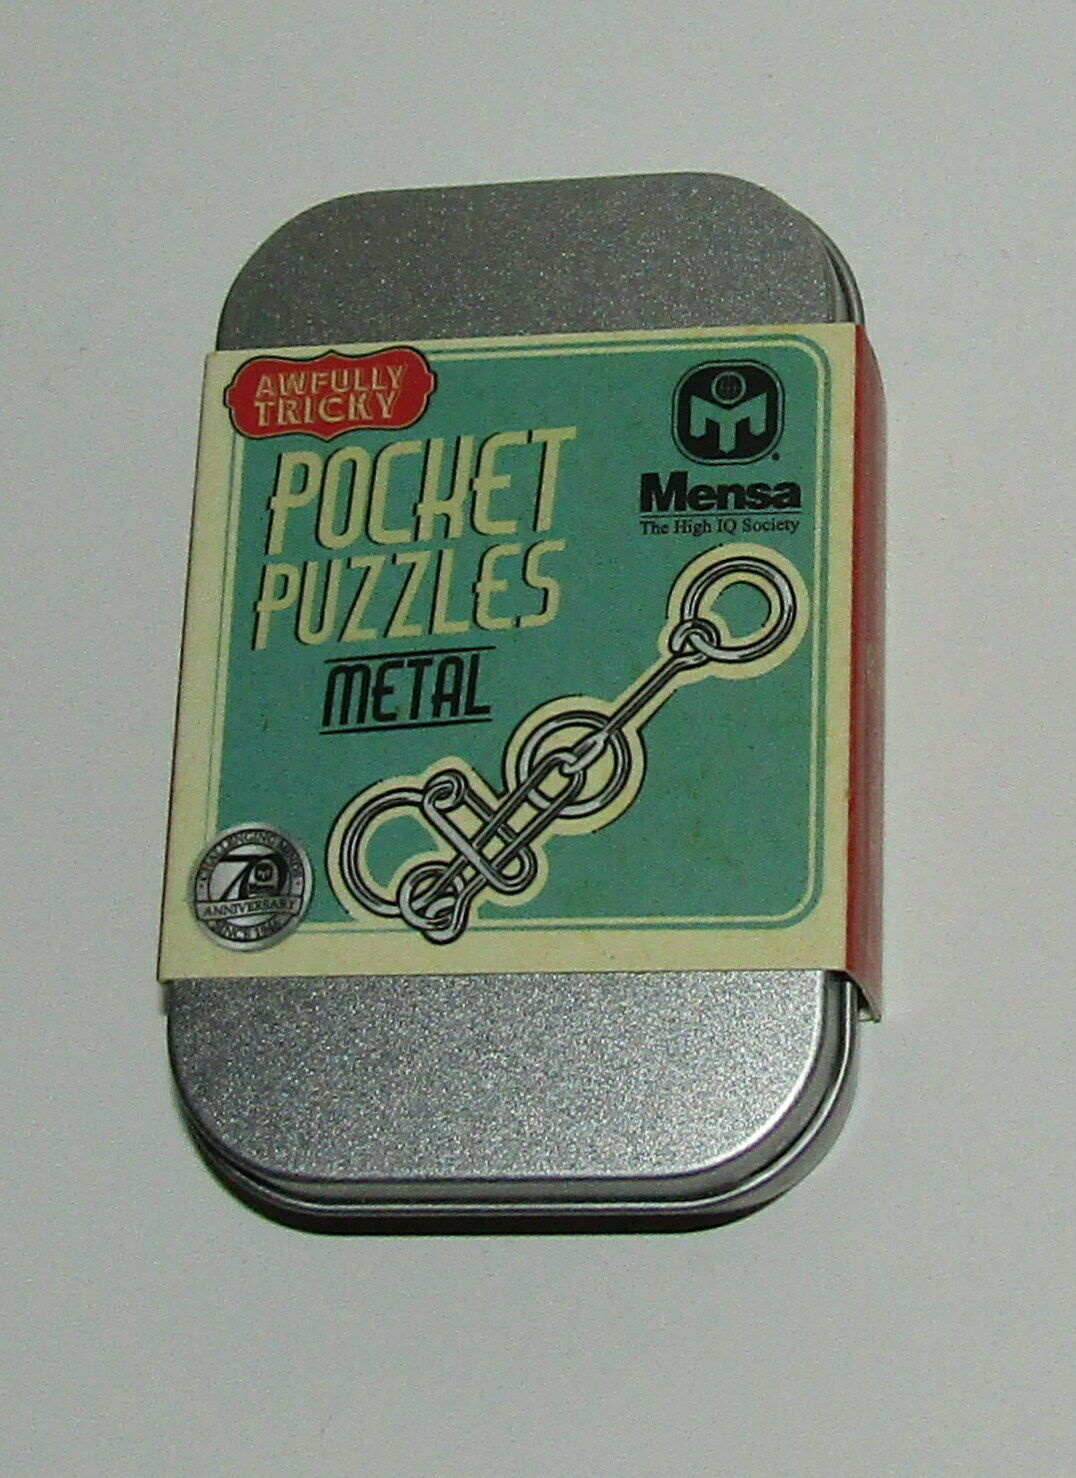 Primary image for Pocket Puzzle Metal New in Tin Case Awfully Tricky 5 Bonus Brainteasers Oblong